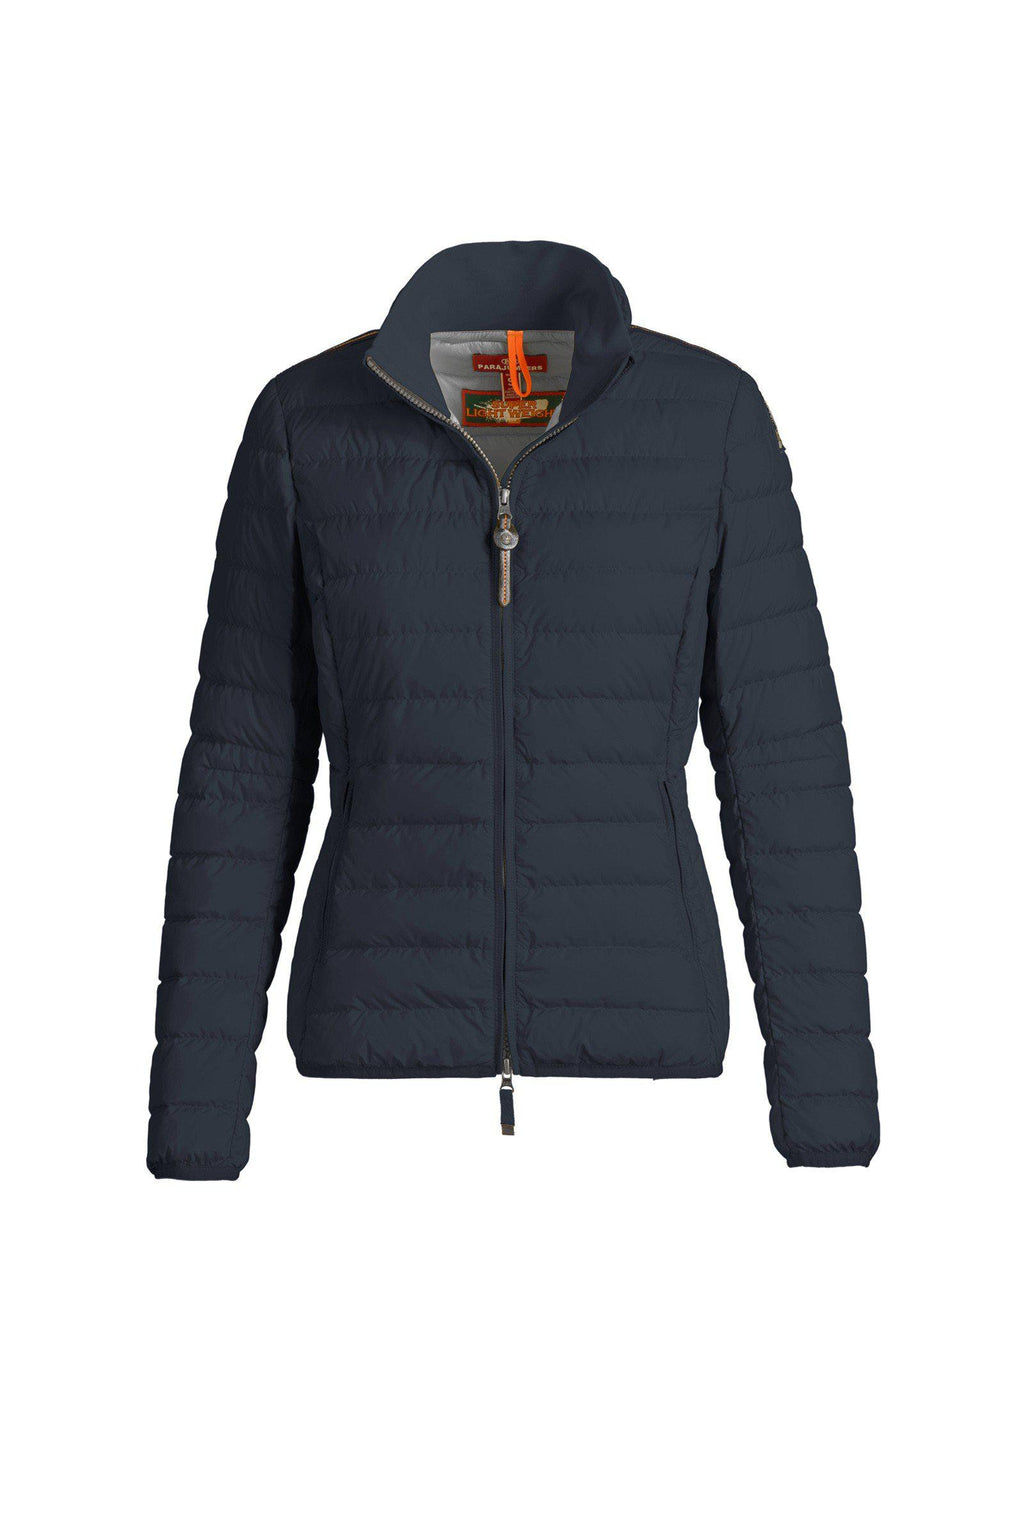 Parajumpers Geena Jacket-Jackets-Classic fashion CF13-XS-Blue-Classic fashion CF13